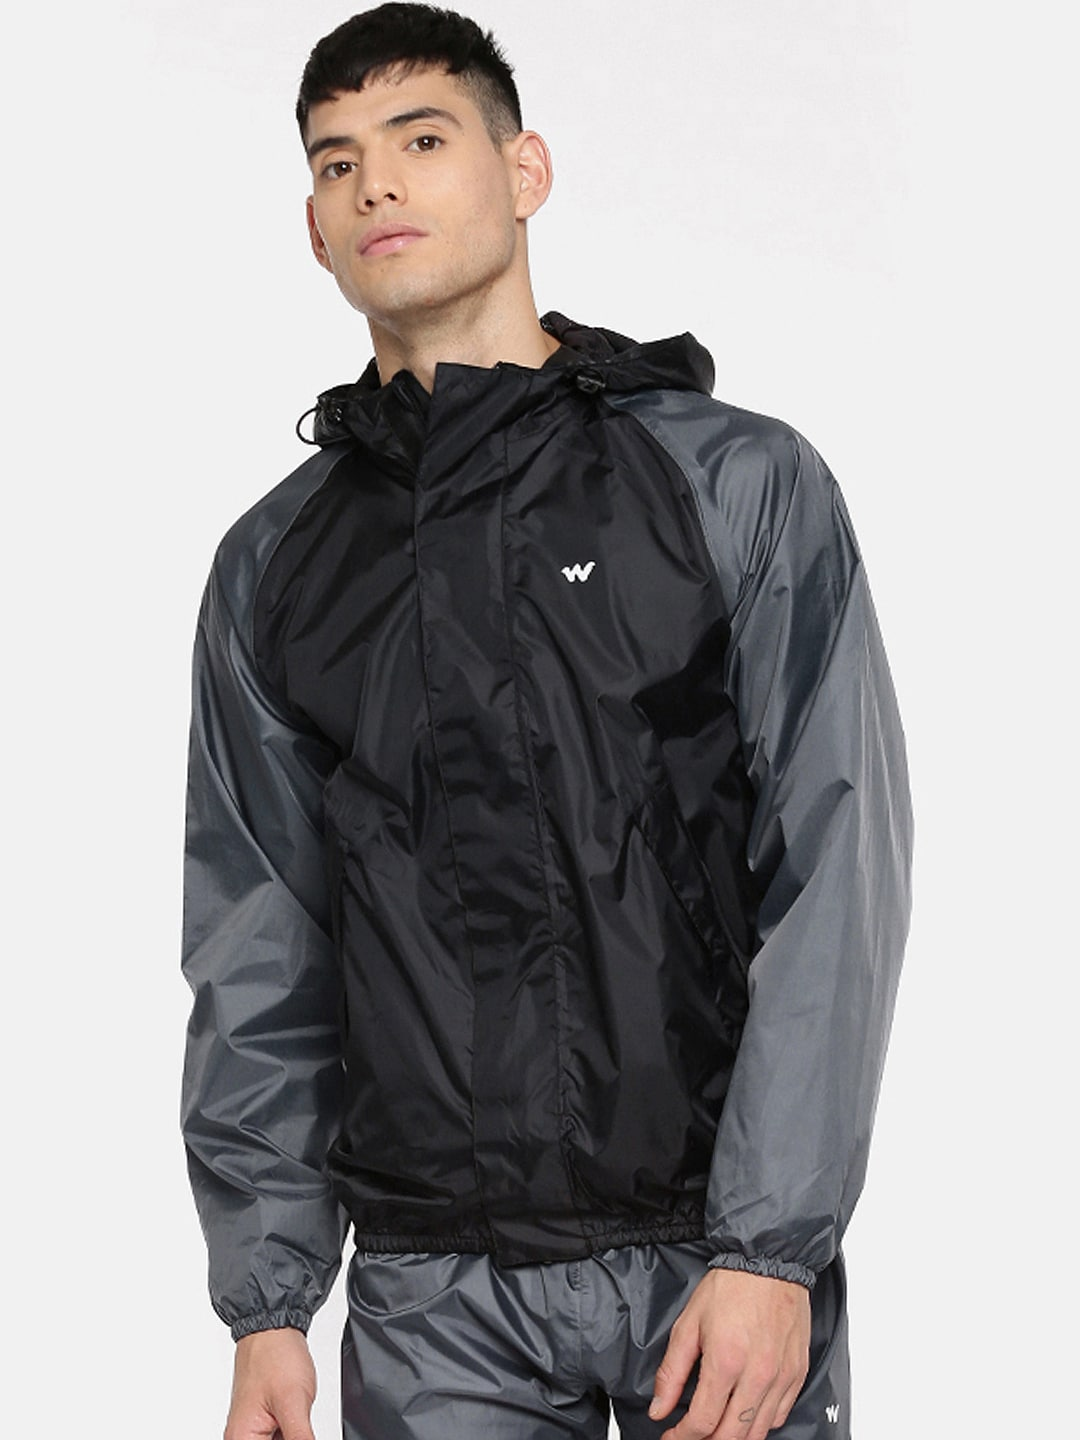 fd7835bd7 Wildcraft Grey and Black Rain Jacket 2 Tone